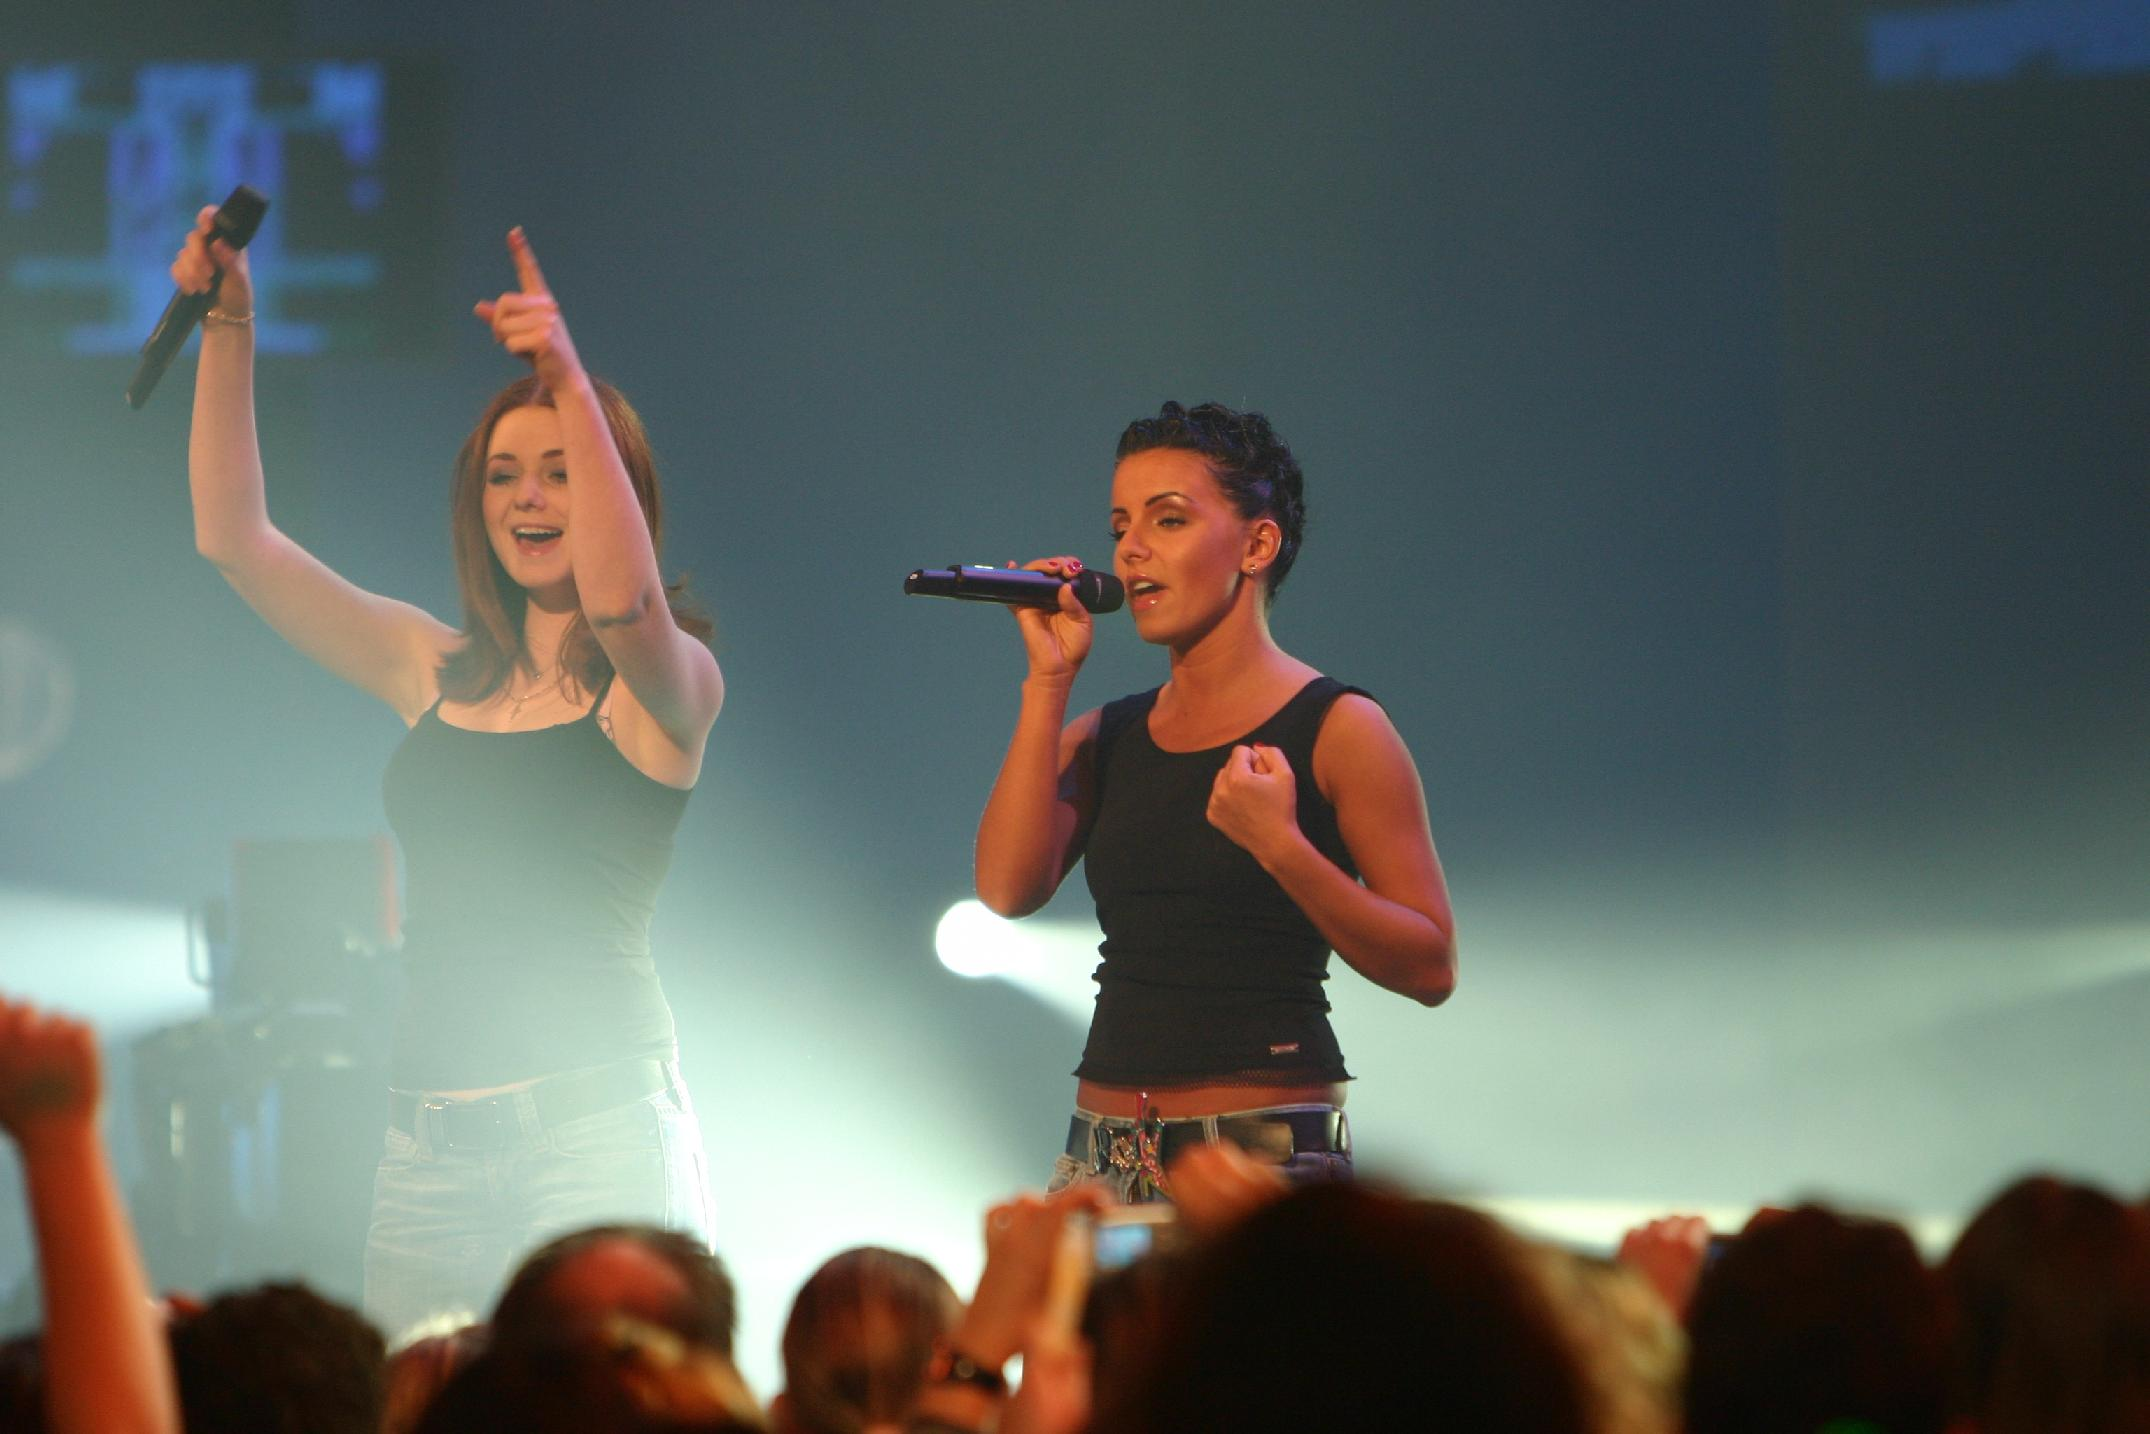 ТАТУ - Tatu Perform at The Dome 37 in Cologne 10.03.2006